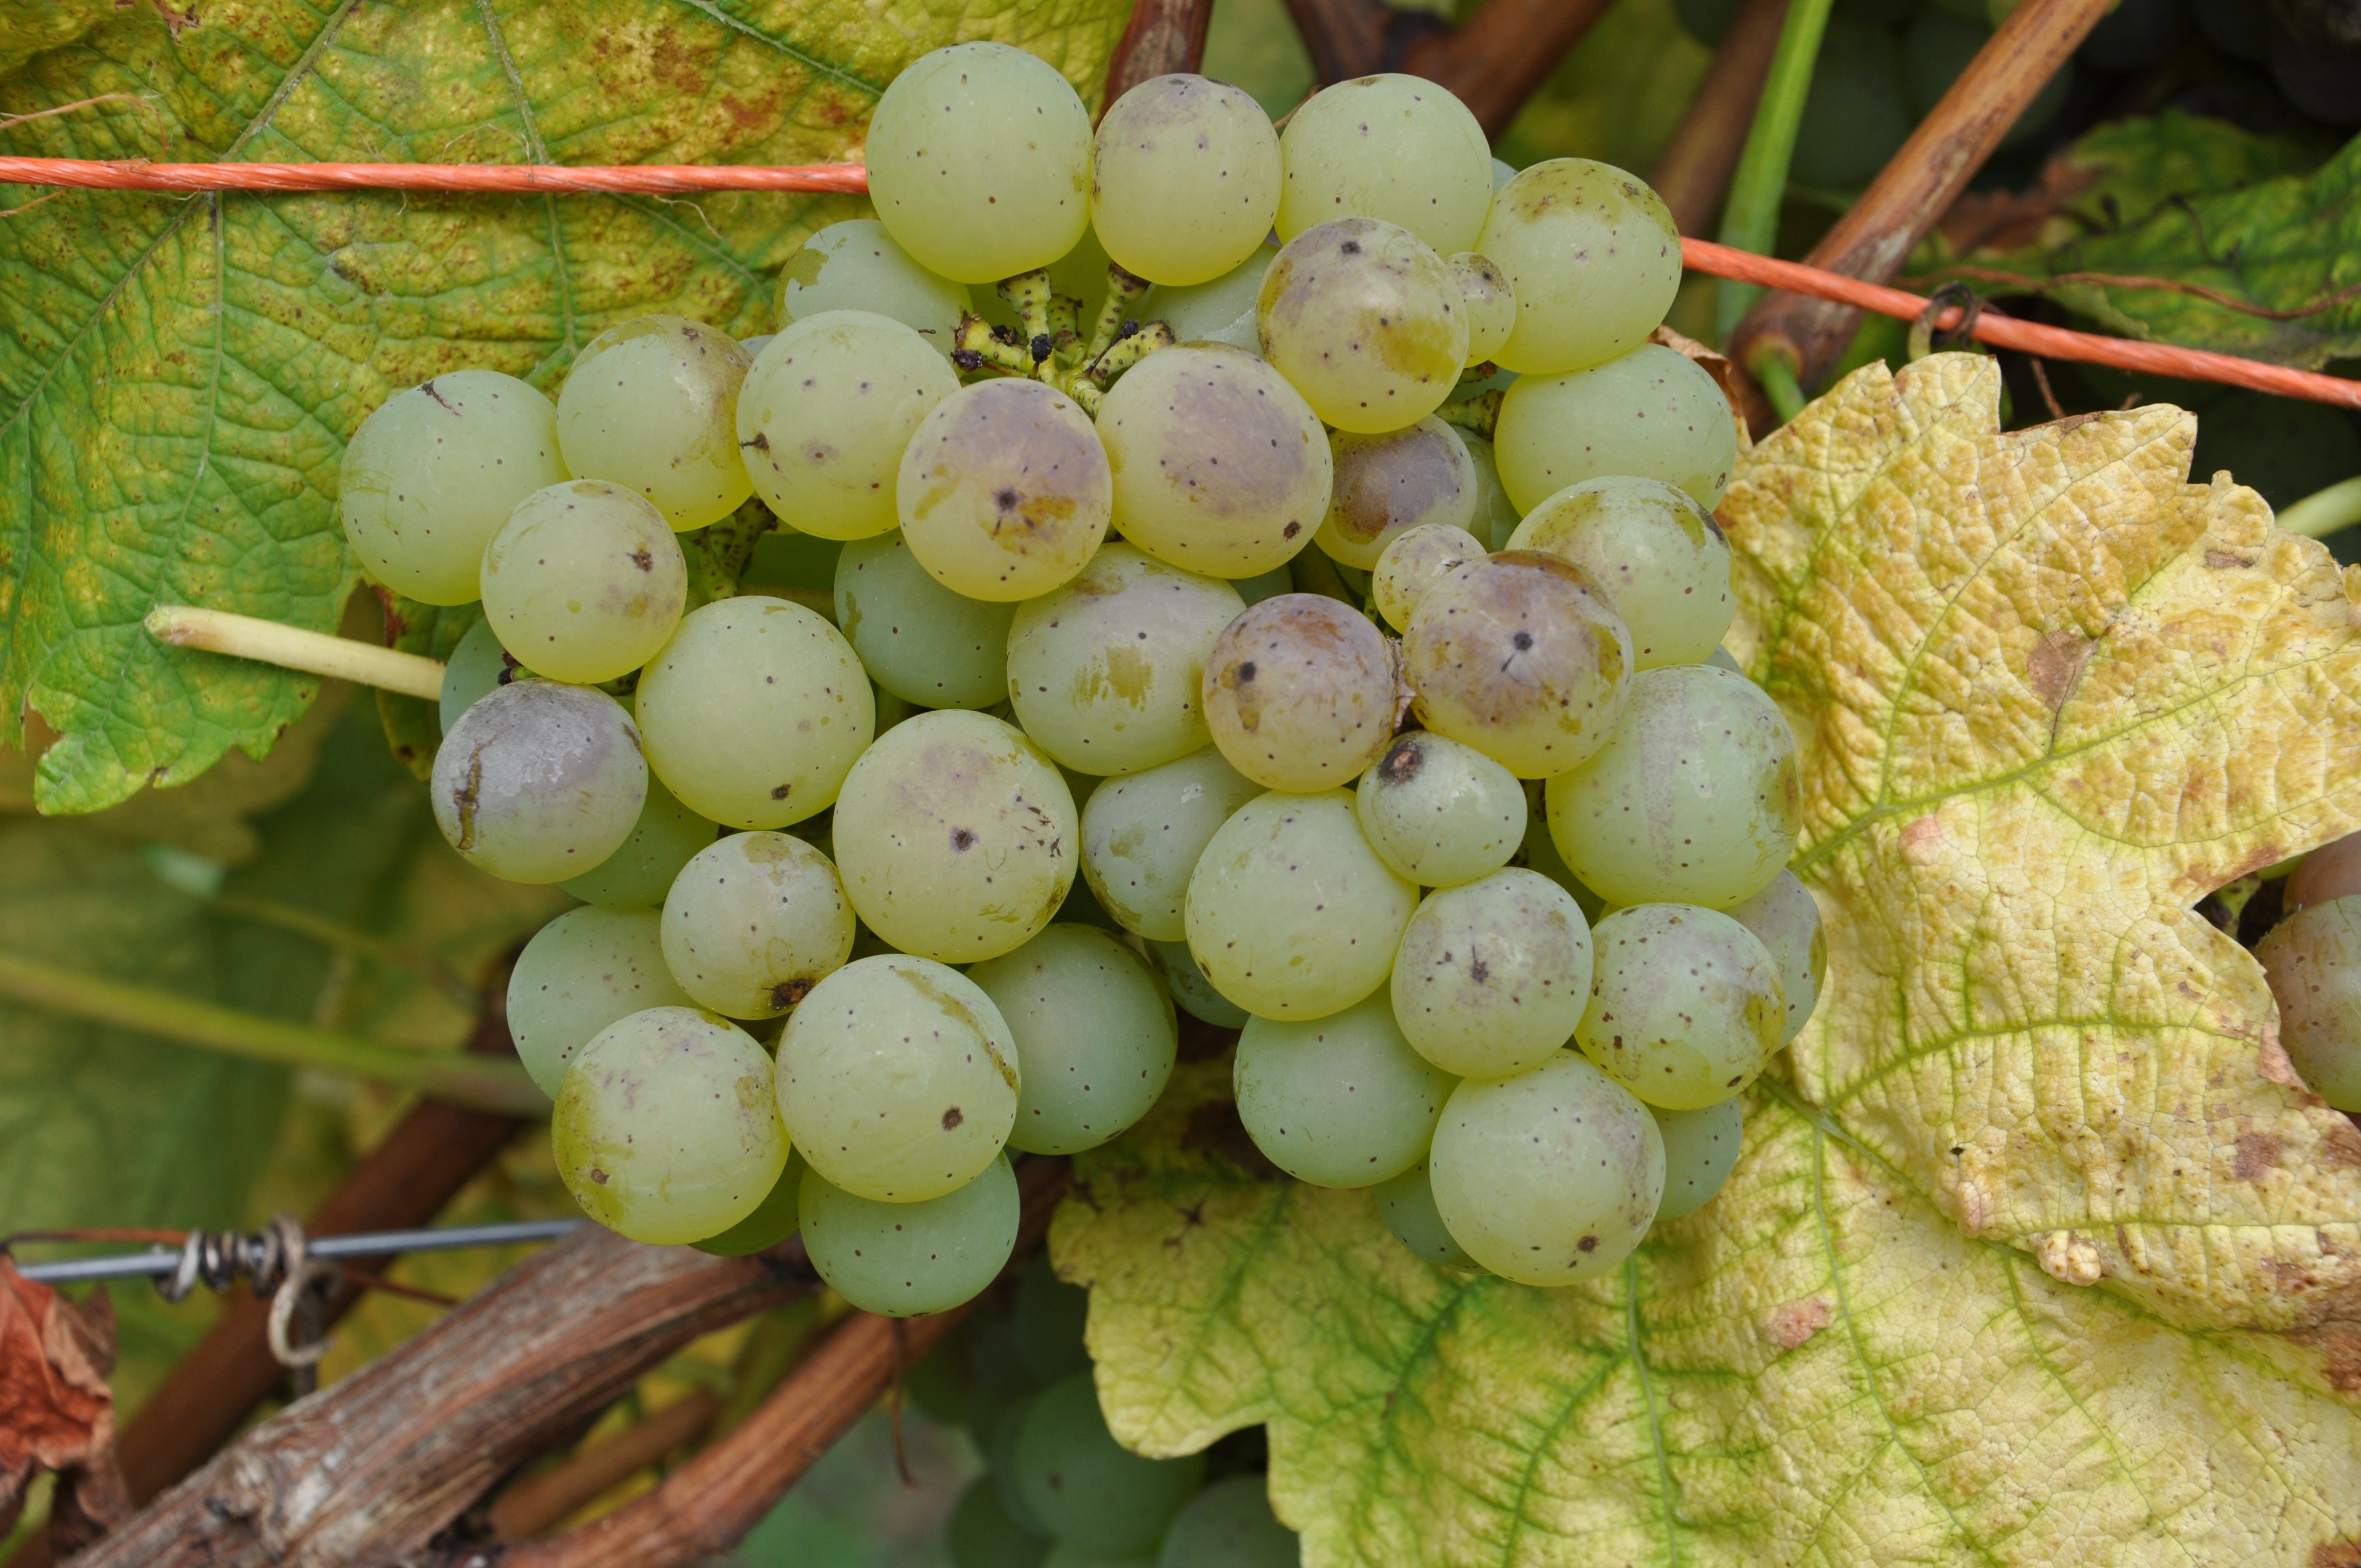 VIVC11796 SILCHER Cluster in the field 8188